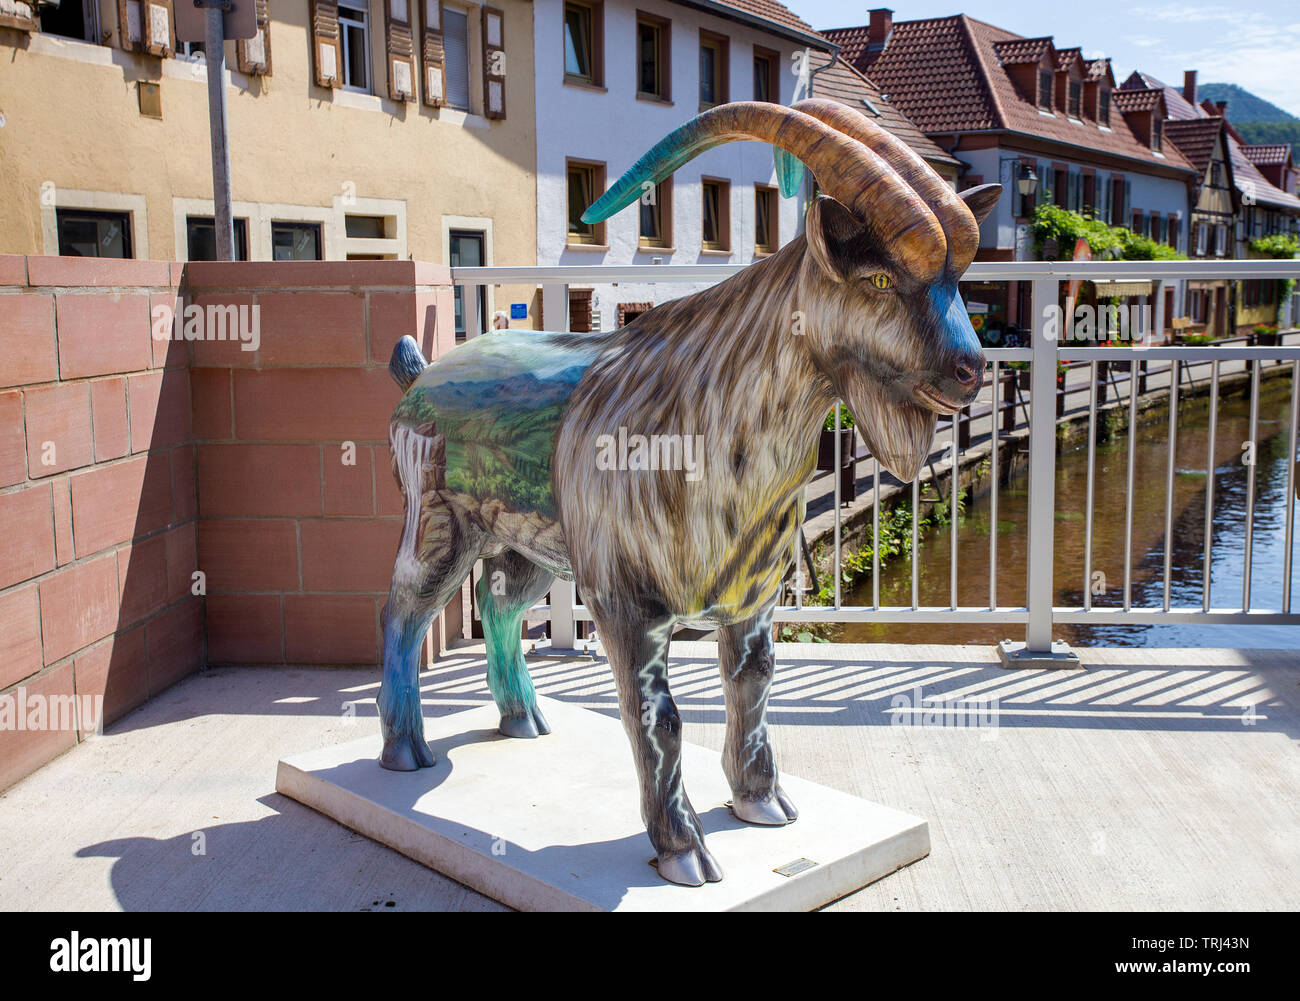 Ramgoat figure at the Queich stream, old town of Annweiler am Trifels, Rhineland-Palatinate, Germany - Stock Image